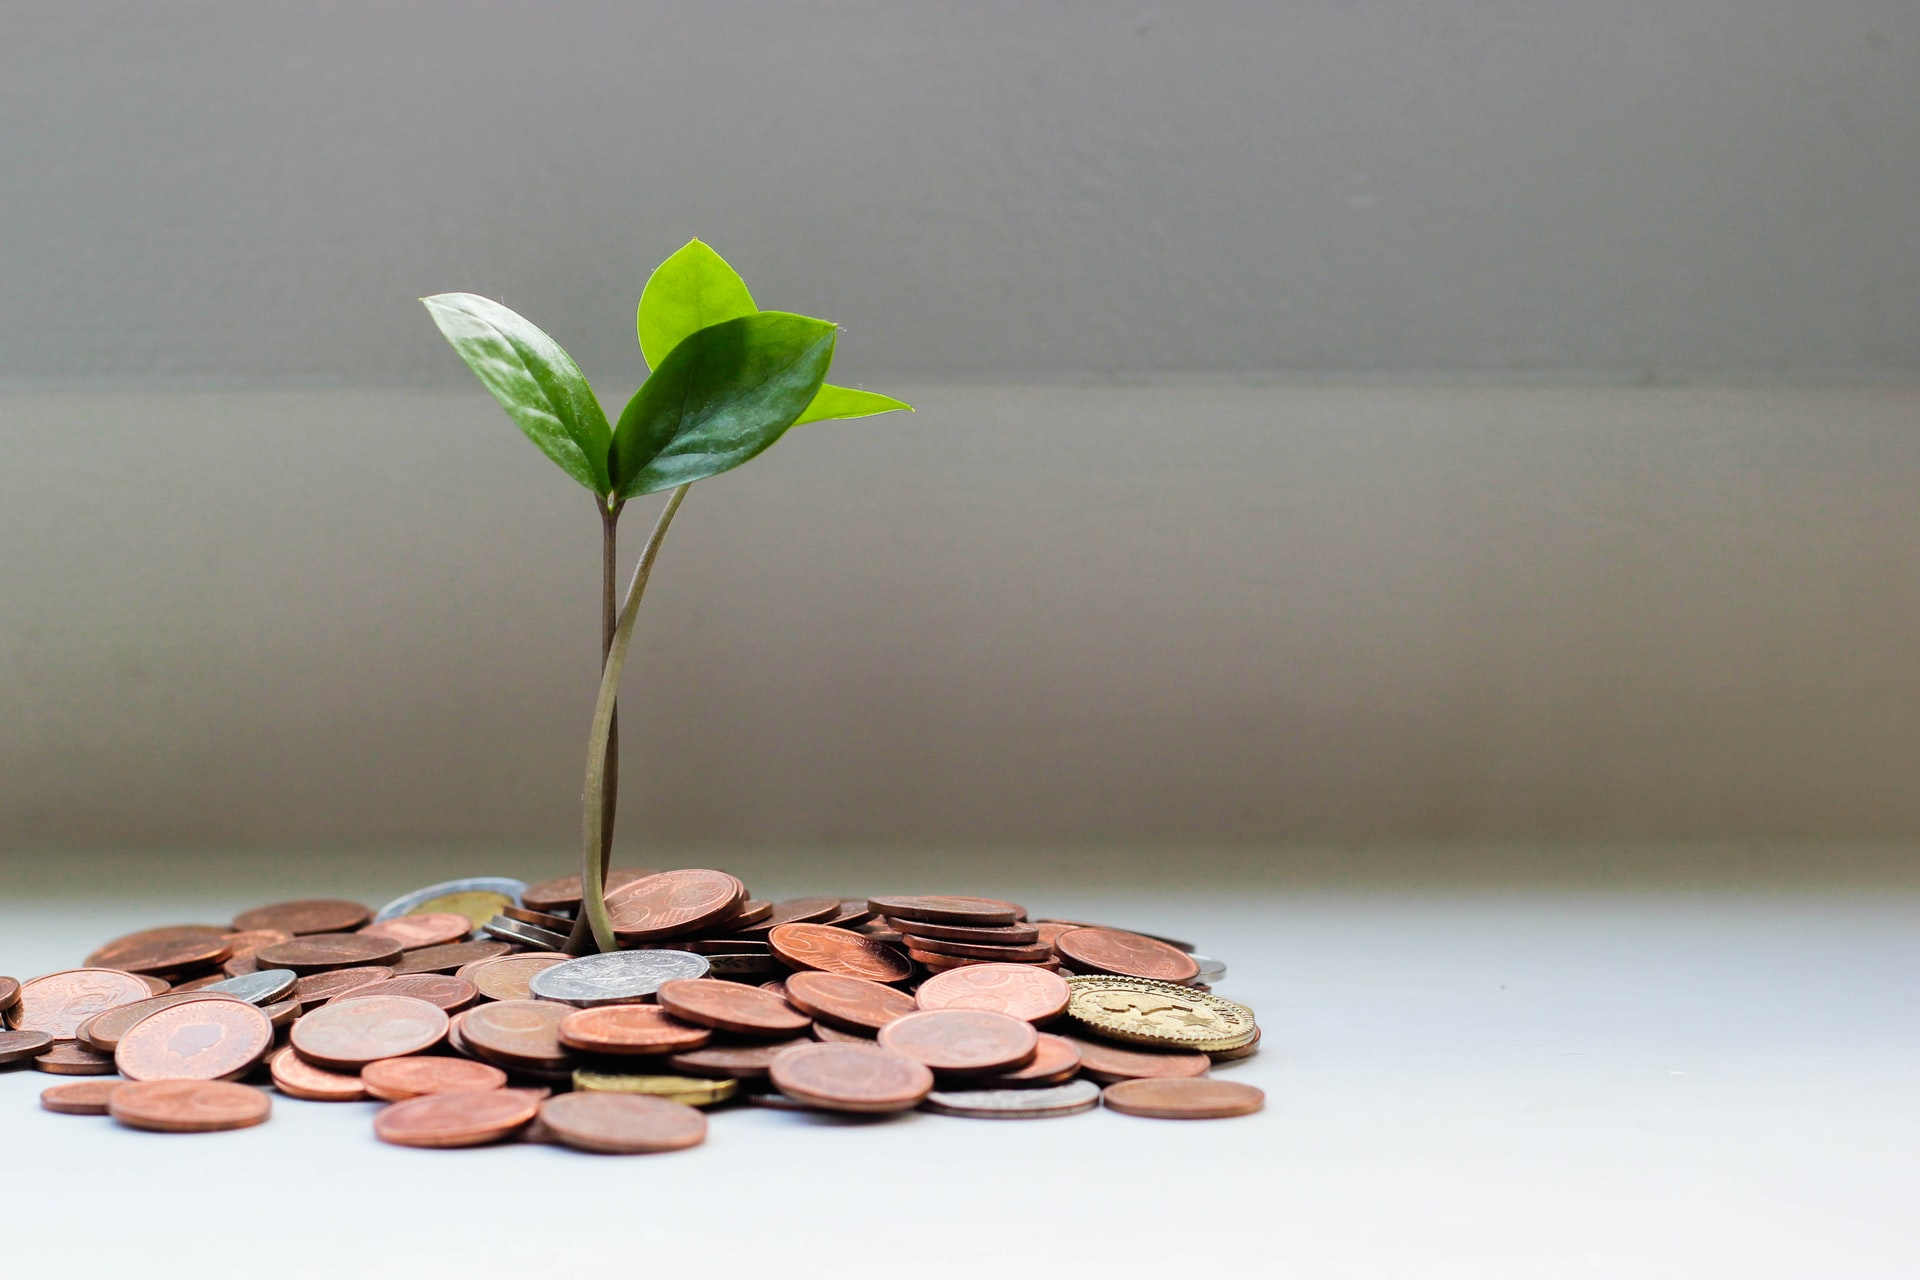 A plant grown from pile of coins that symbolize the savings you will have when trim shipping costs